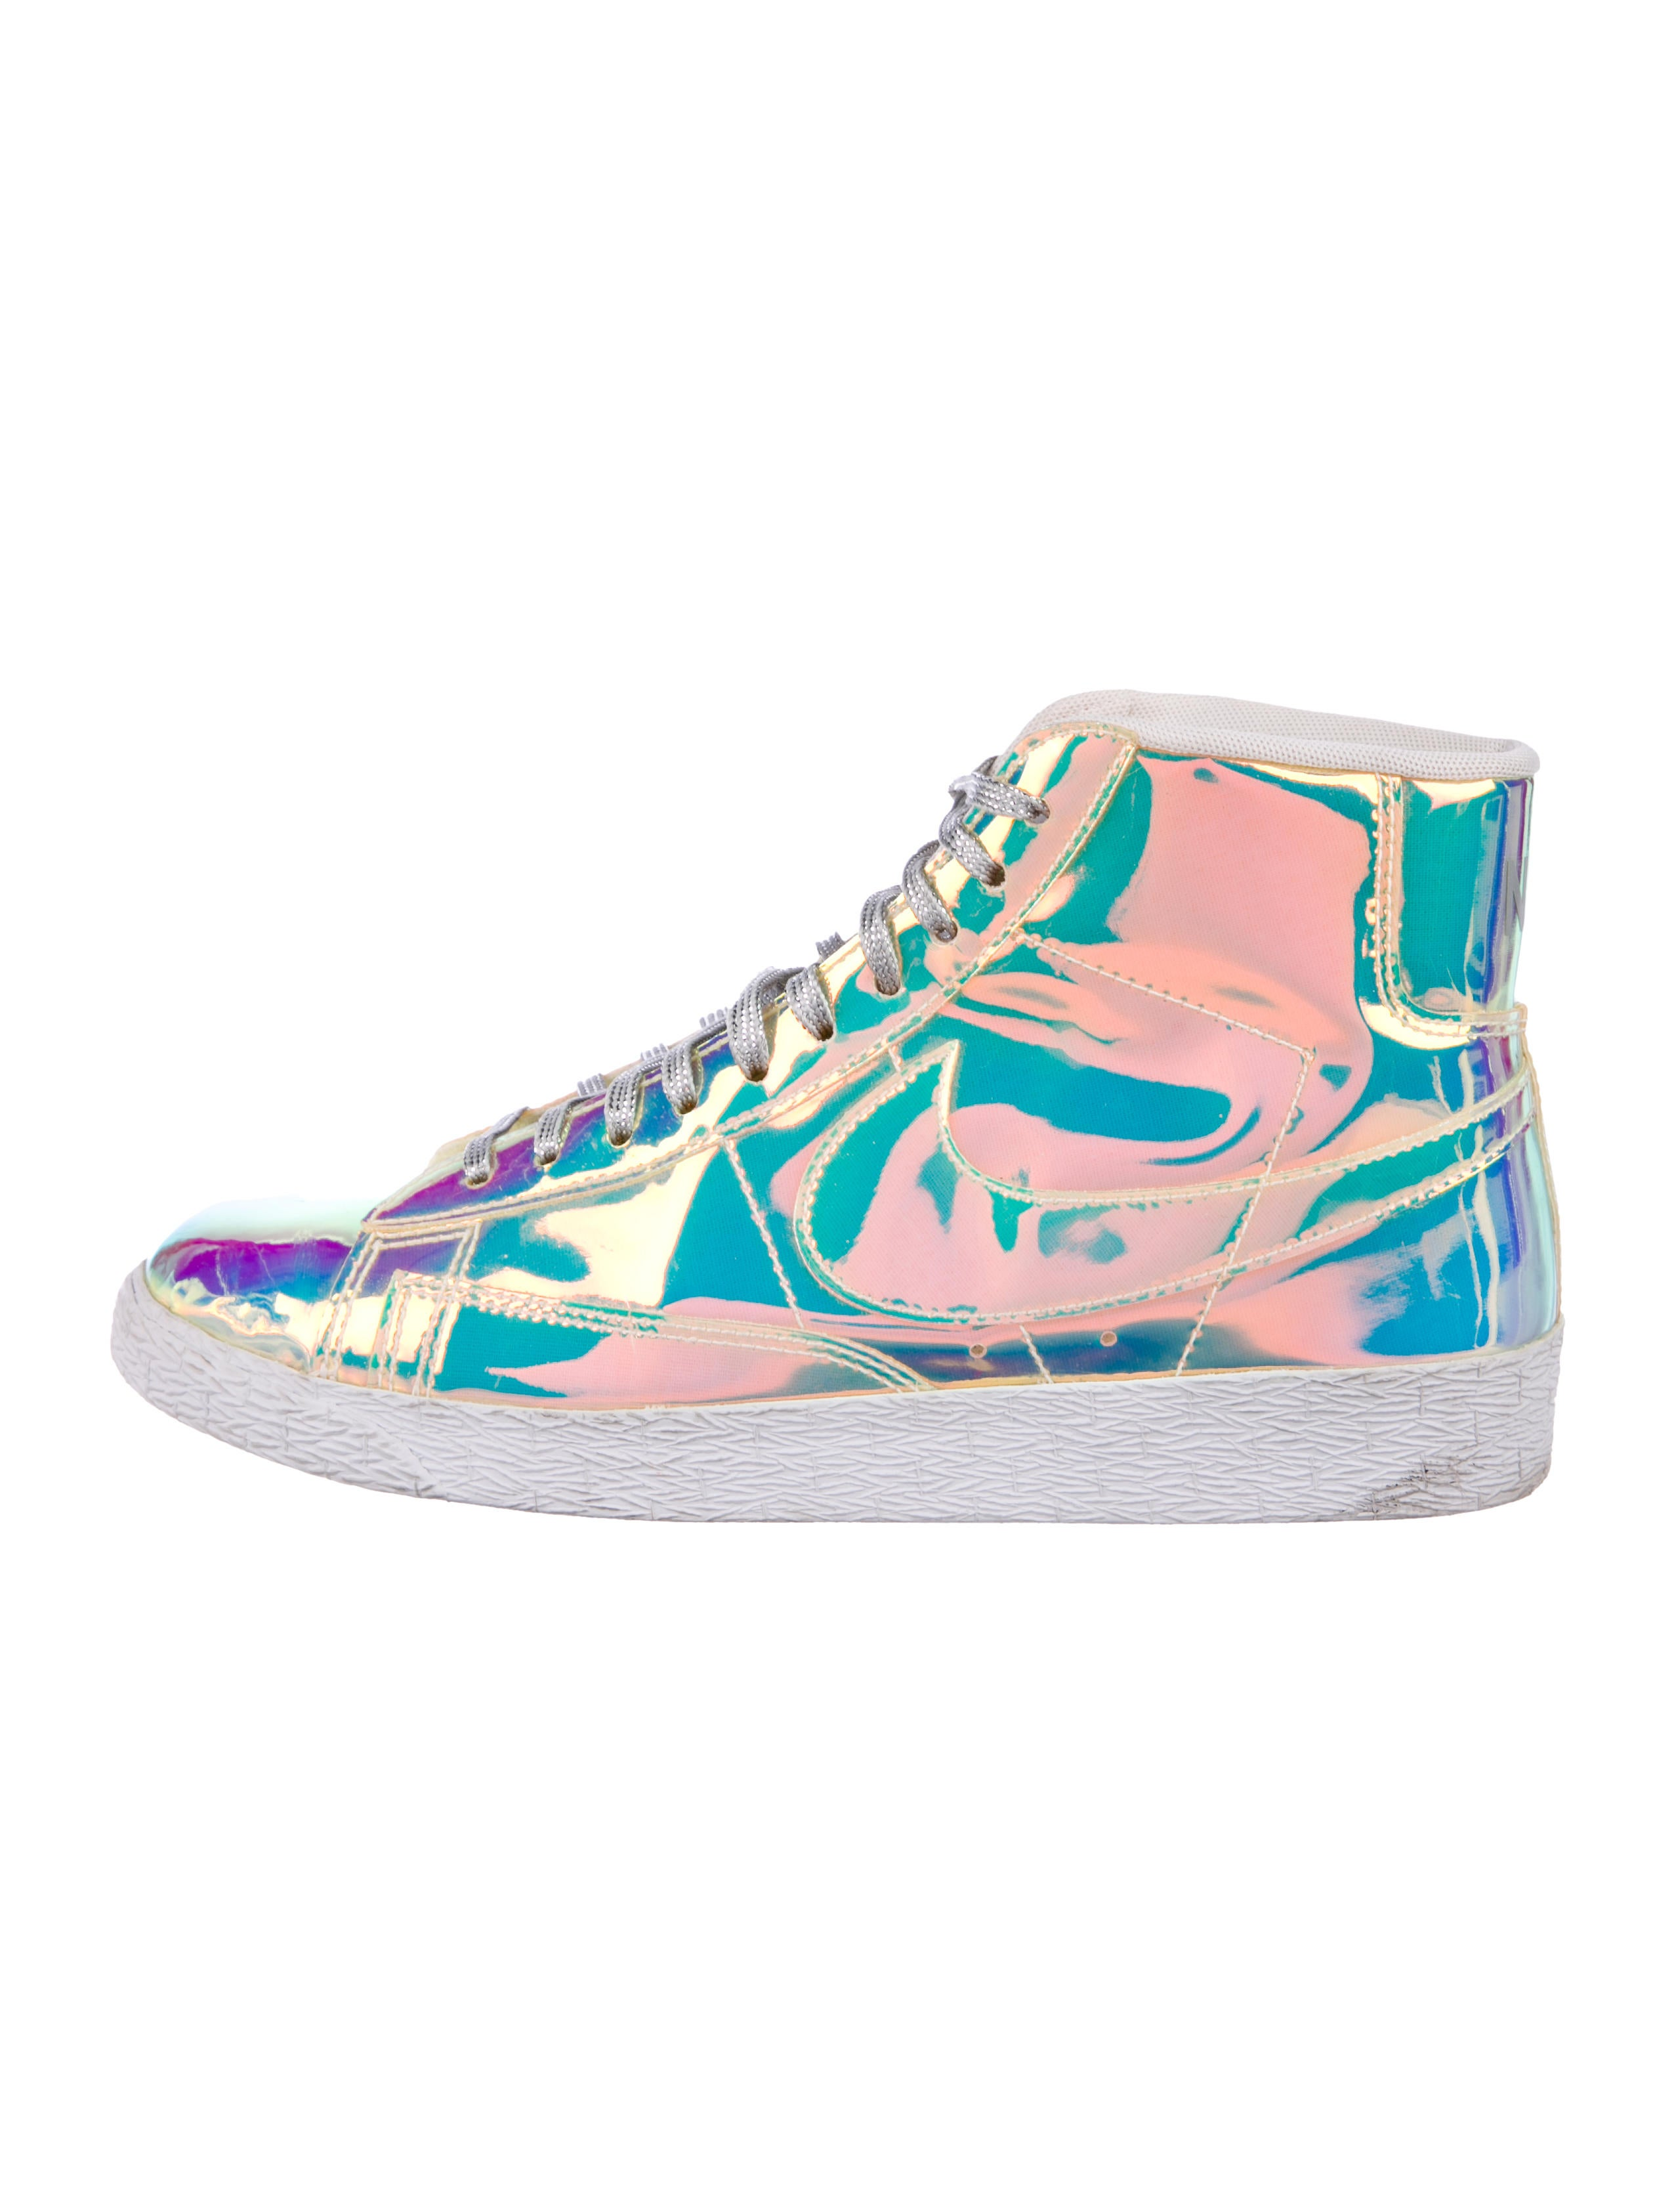 Nike Holographic High-Top Sneakers